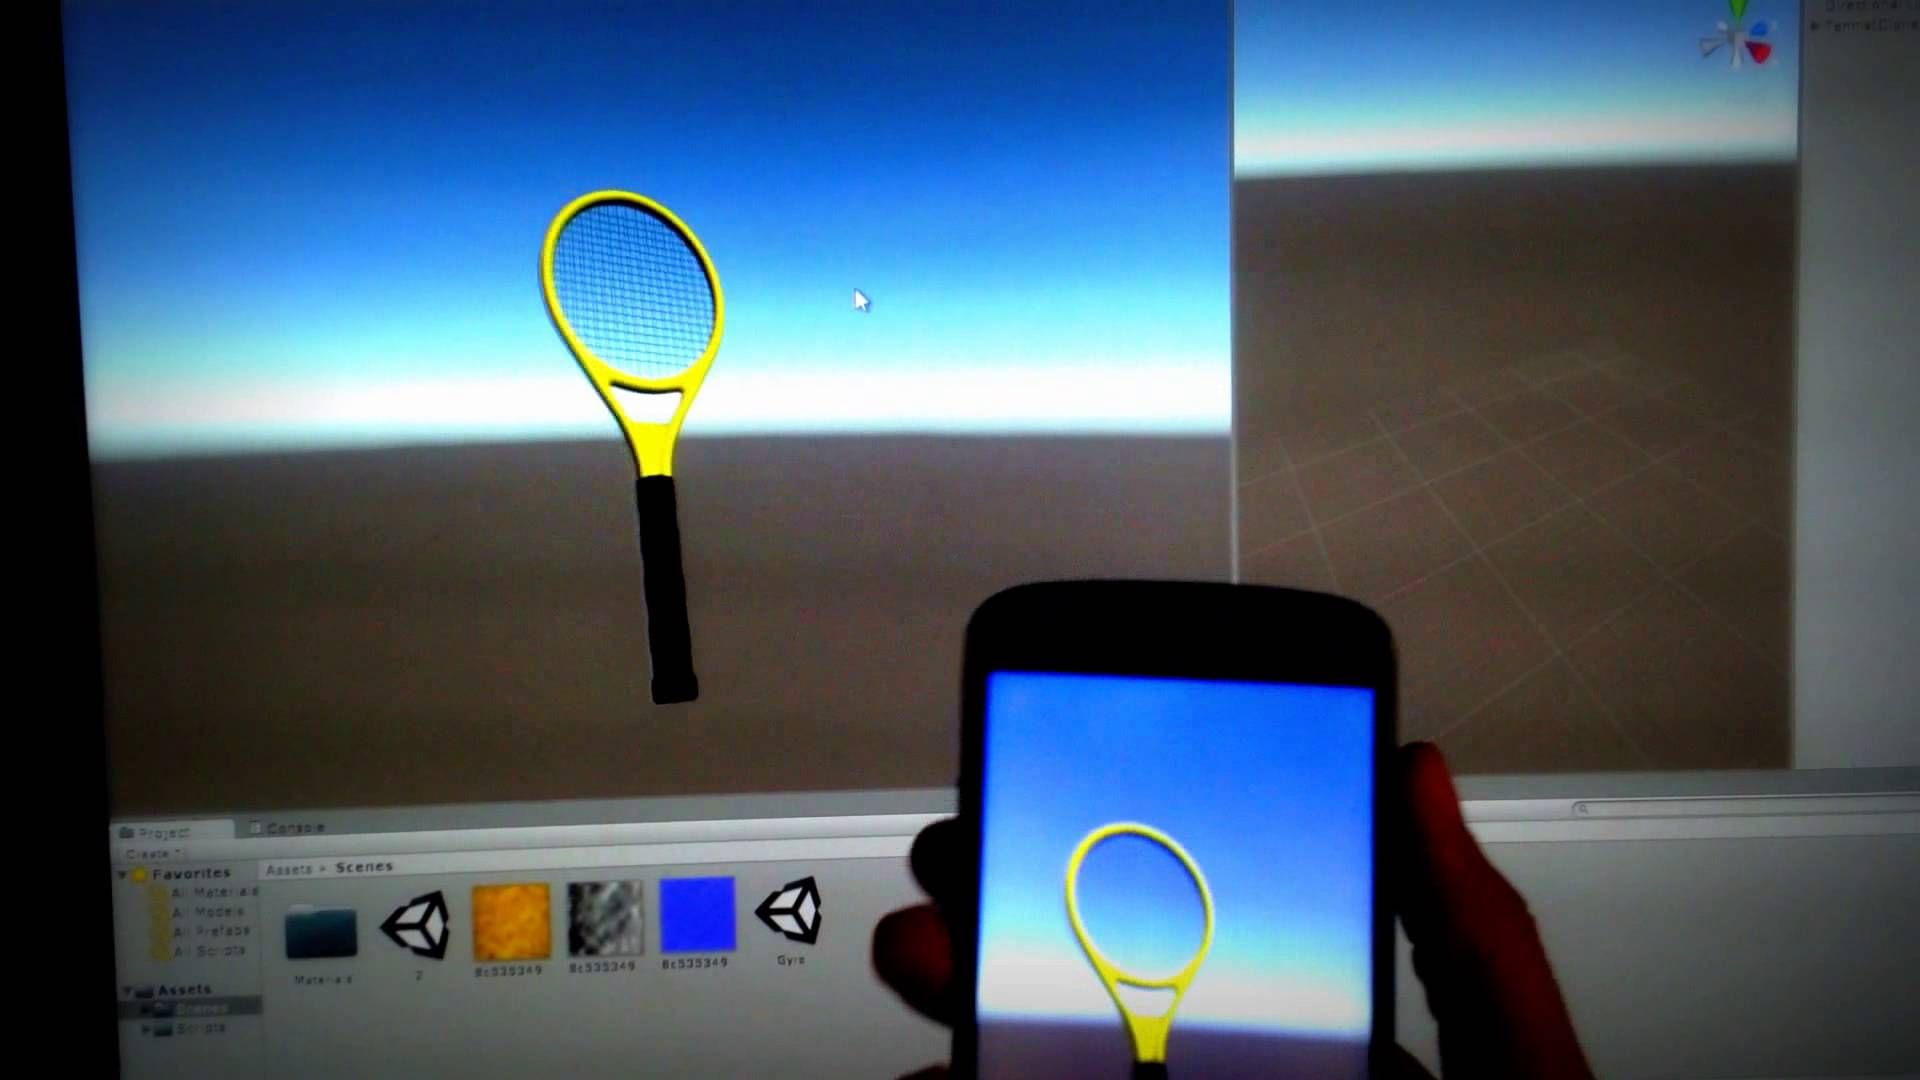 Gyro Motion, on Unity 3D android test | Interactive | Unity 3d